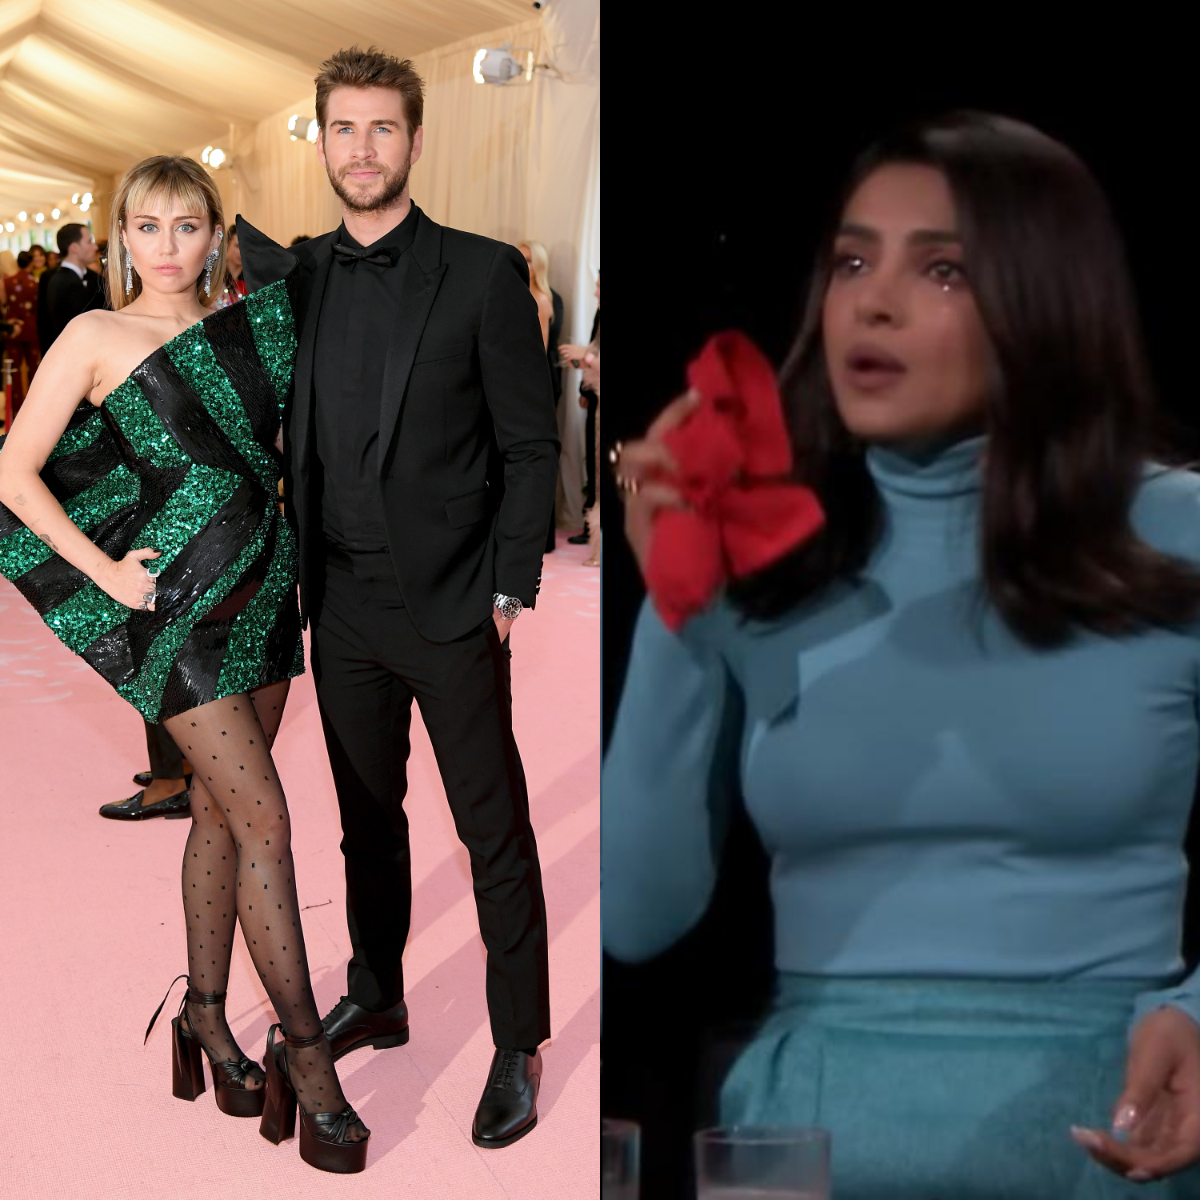 Hollywood Newsmakers of the Week: Liam Hemsworth moves on from Miley Cyrus to Priyanka Chopra shedding tears